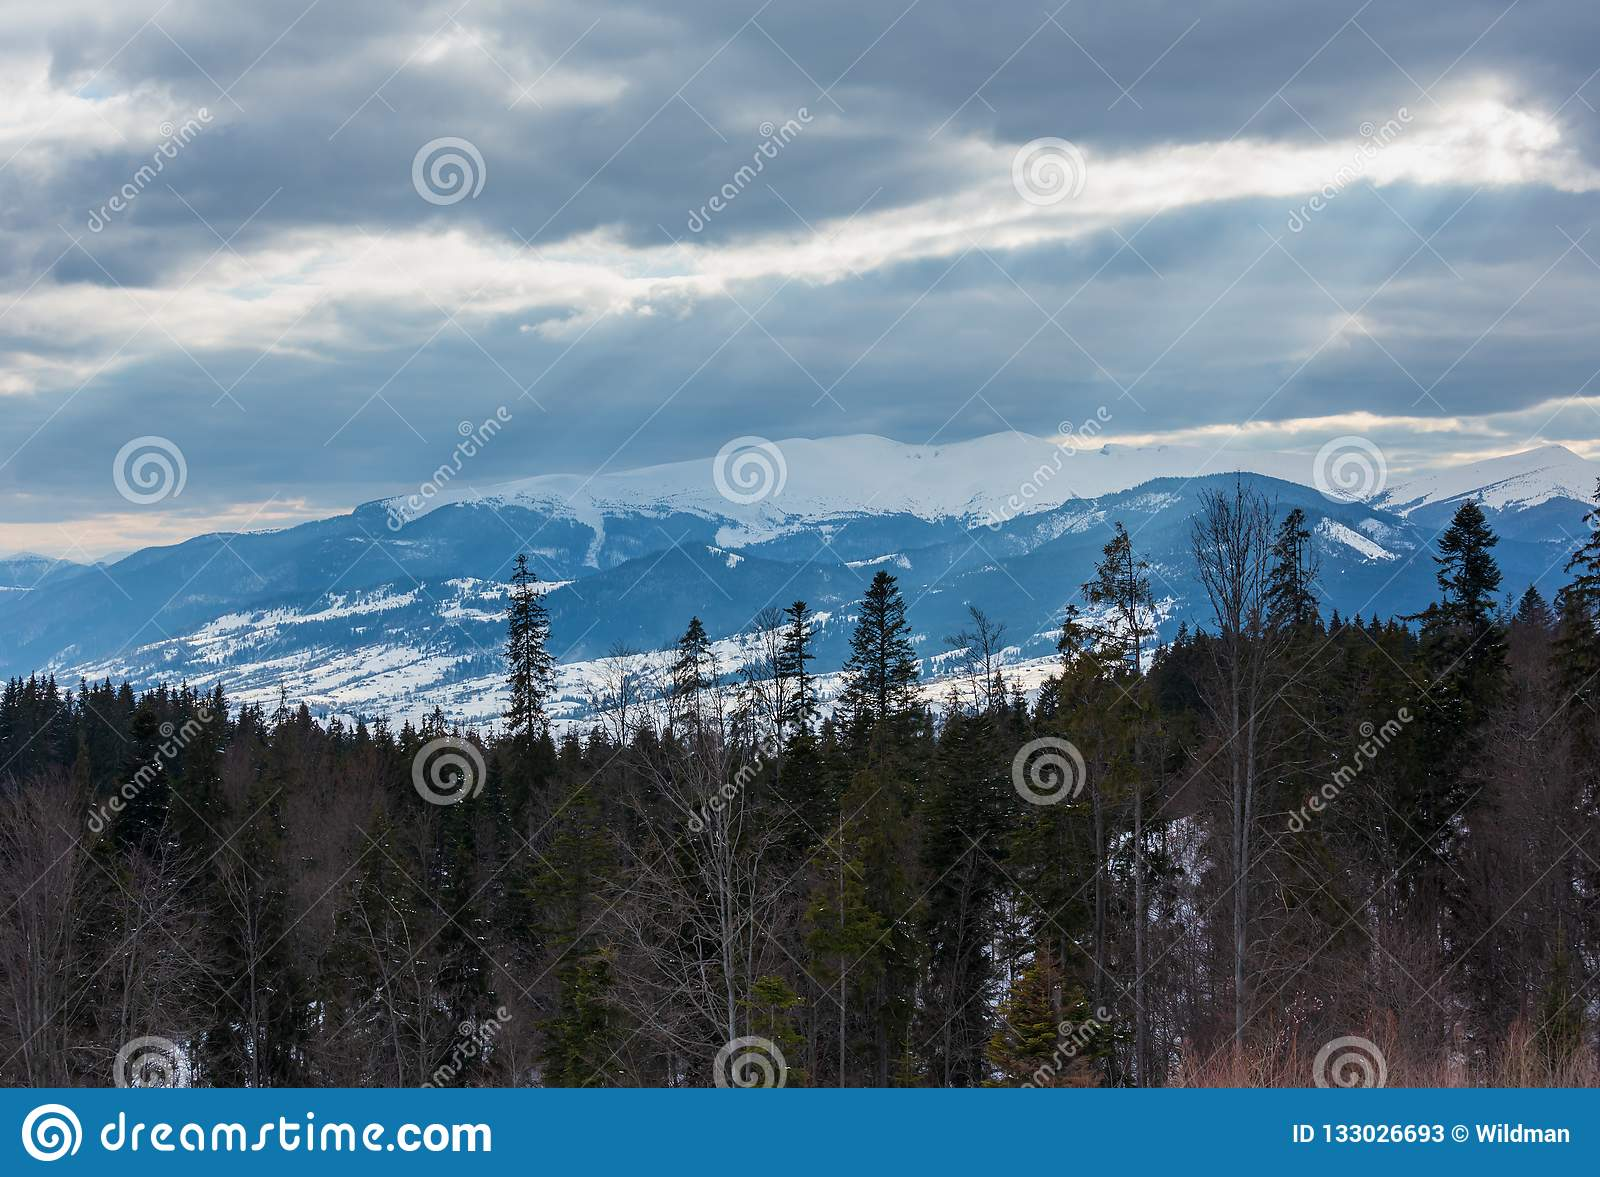 Evening Winter Mountain Ridge And Sun Rays From Cloudy Sky